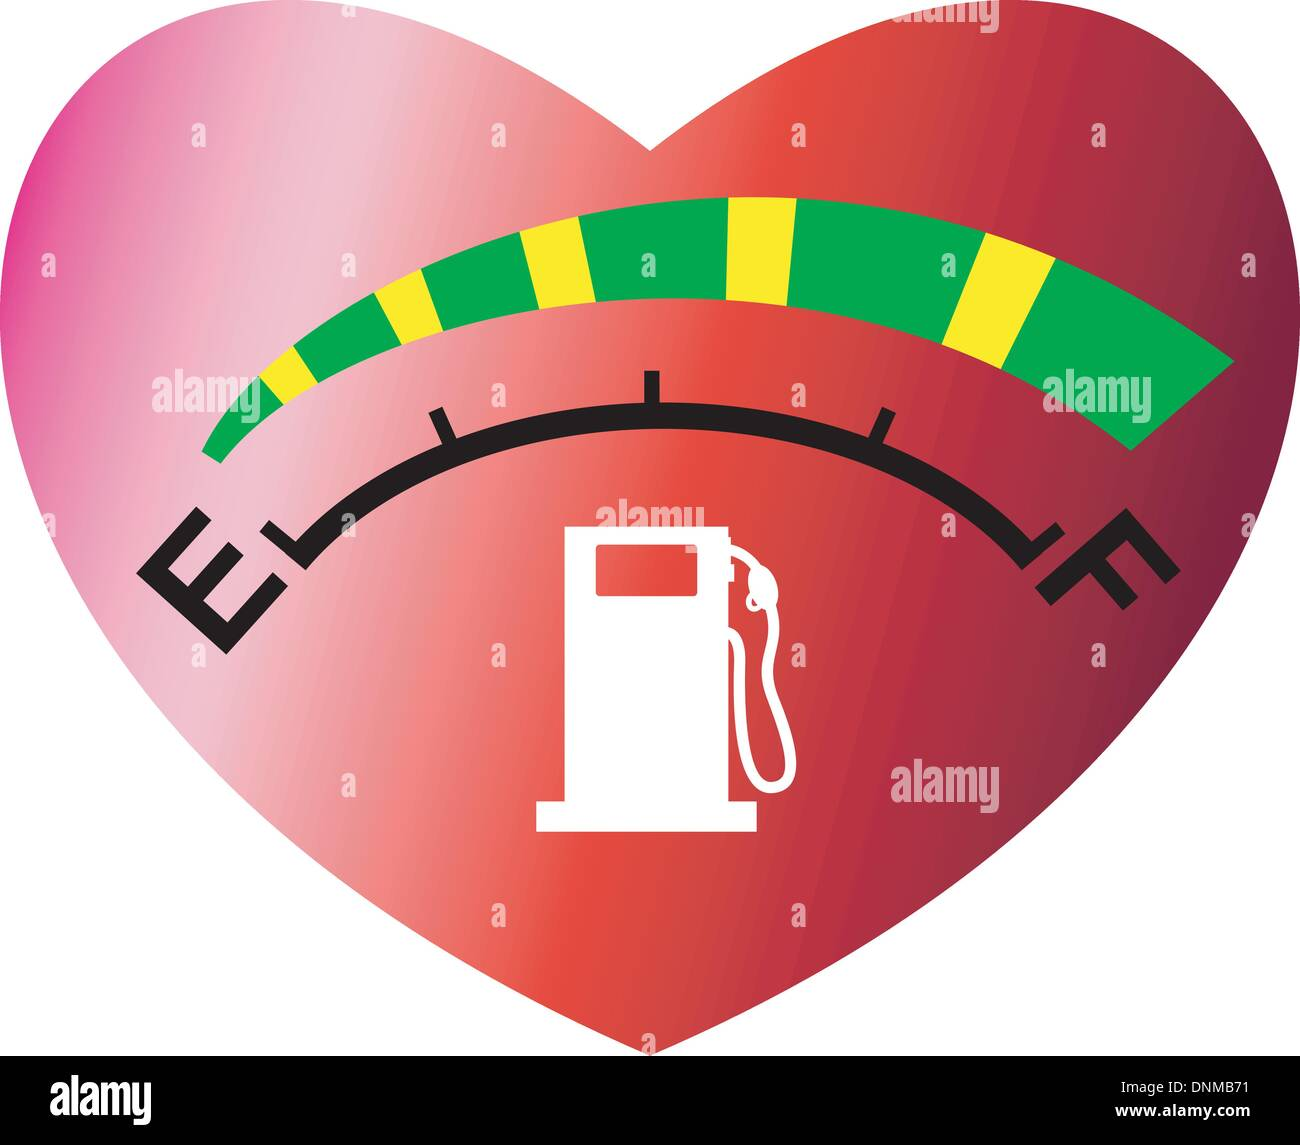 Illustration of a fuel gage meter showing empty to full set inside illustration of a fuel gage meter showing empty to full set inside heart shape on isolated white background ccuart